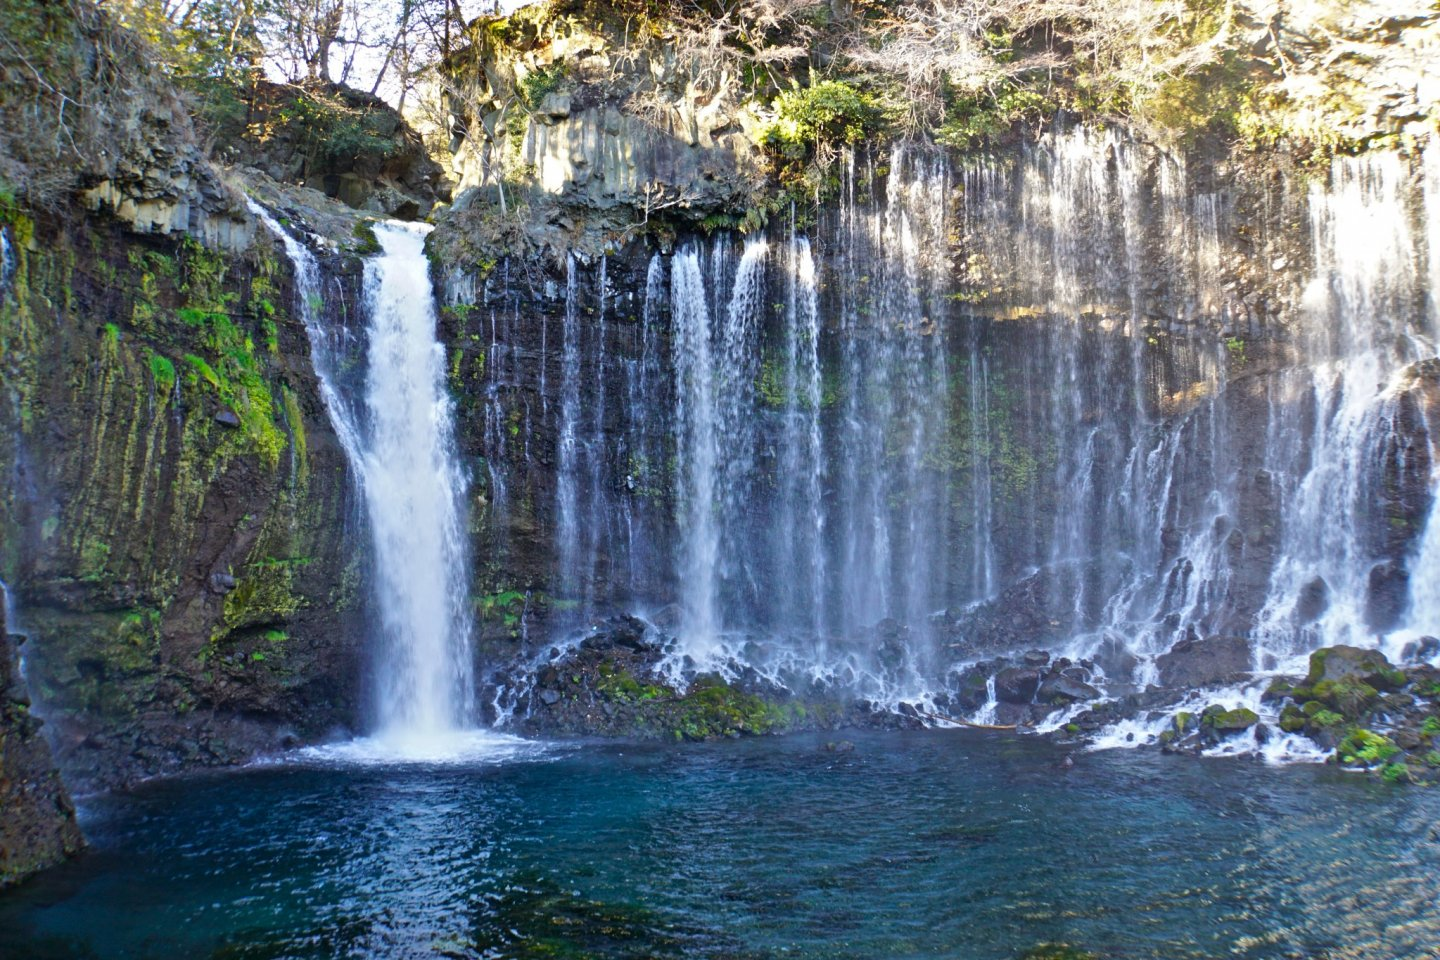 Shiraito no Taki, a curtain of threadlike waterfalls